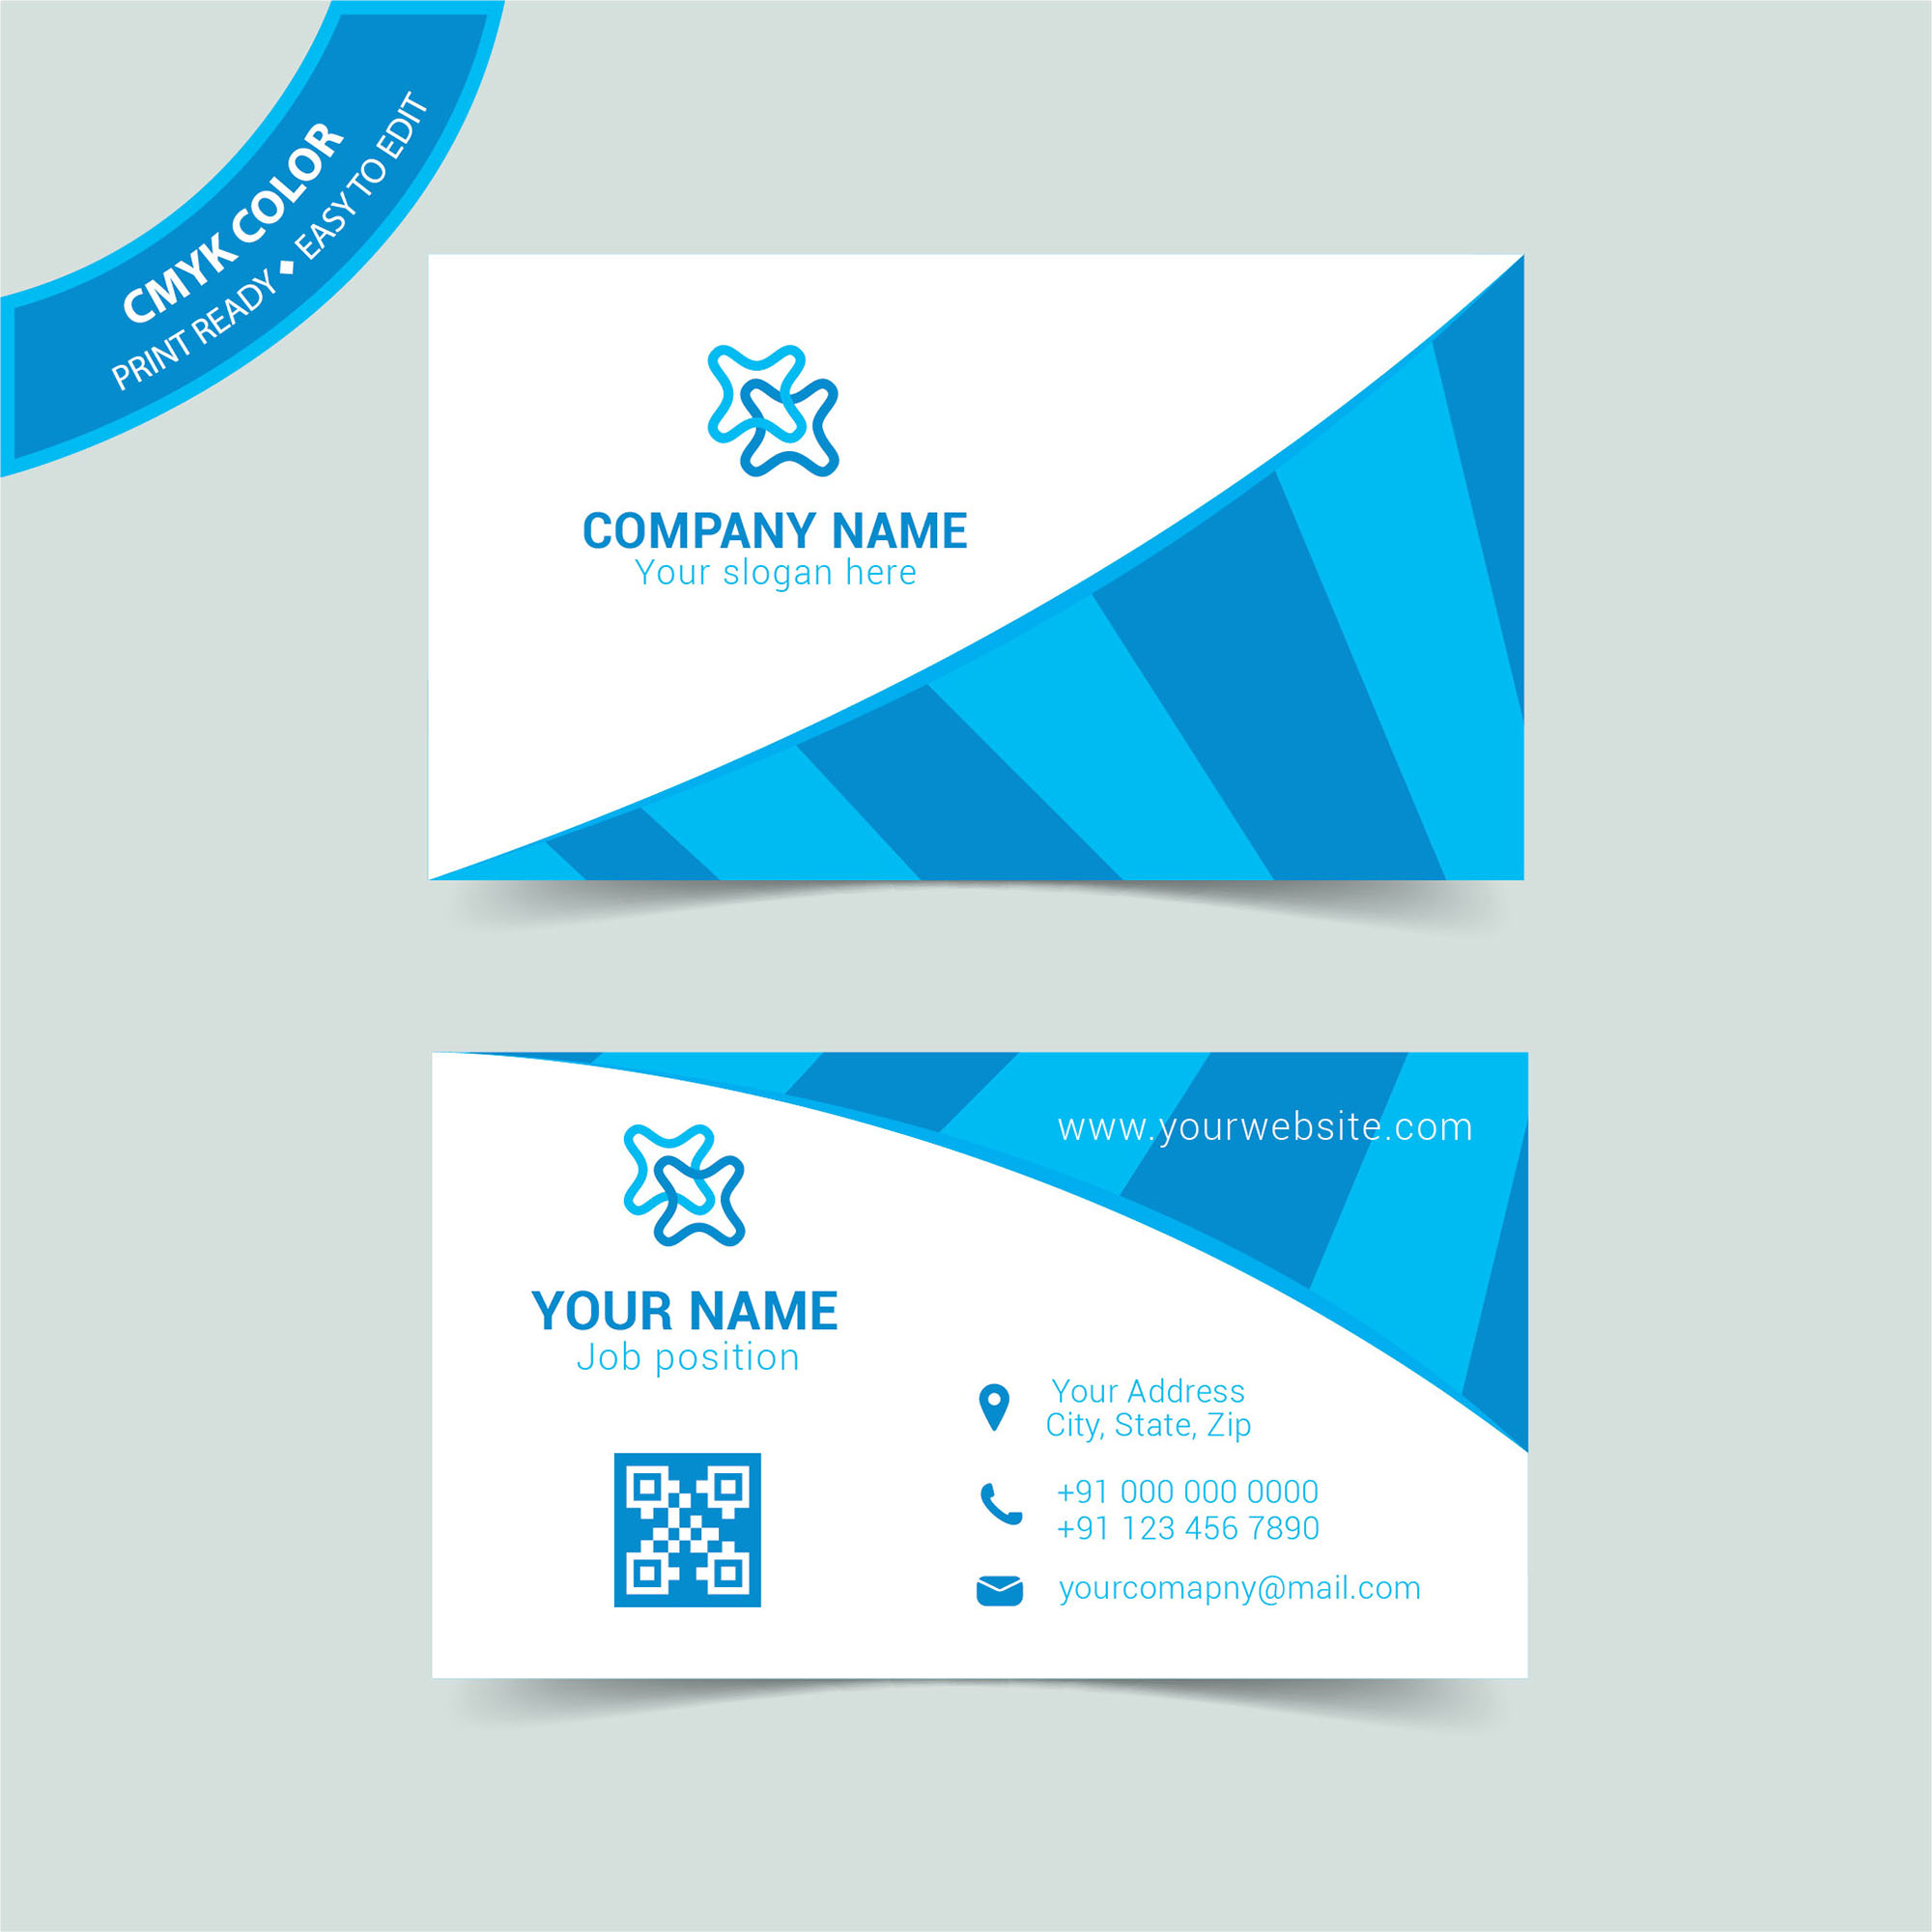 Professional Business Card Templates Free Download - Wisxi.com